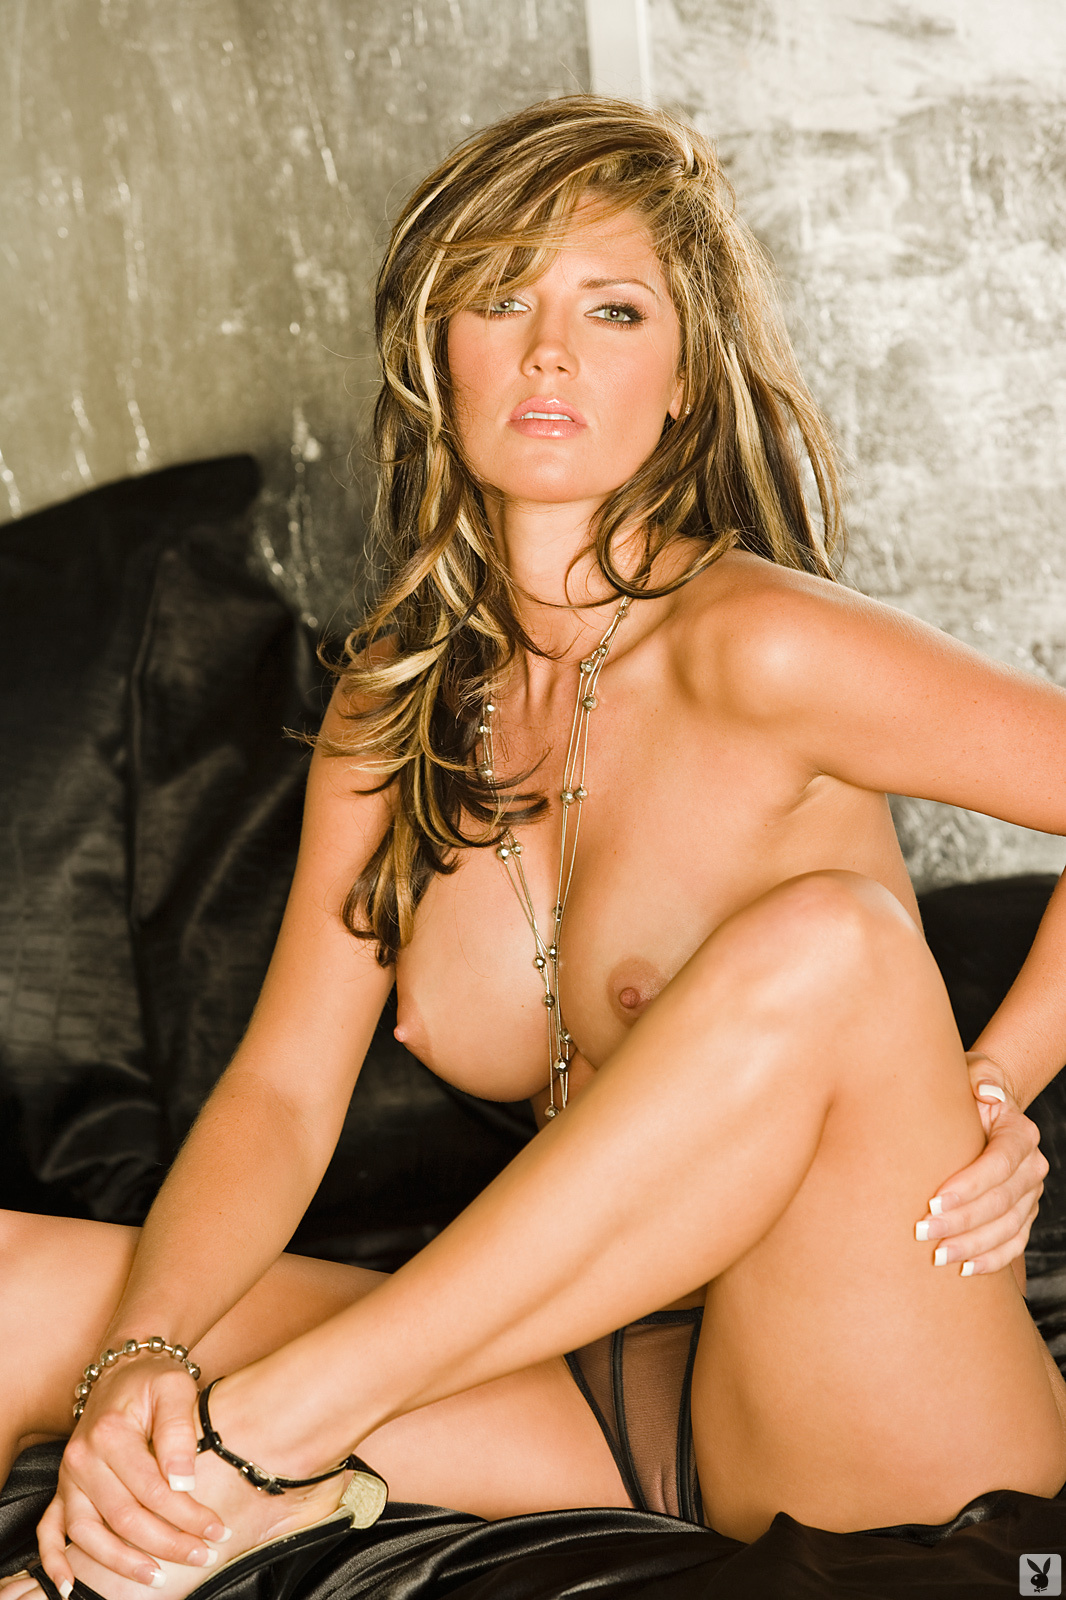 Playmate Exclusive May 2009 Crystal Mccahill0007